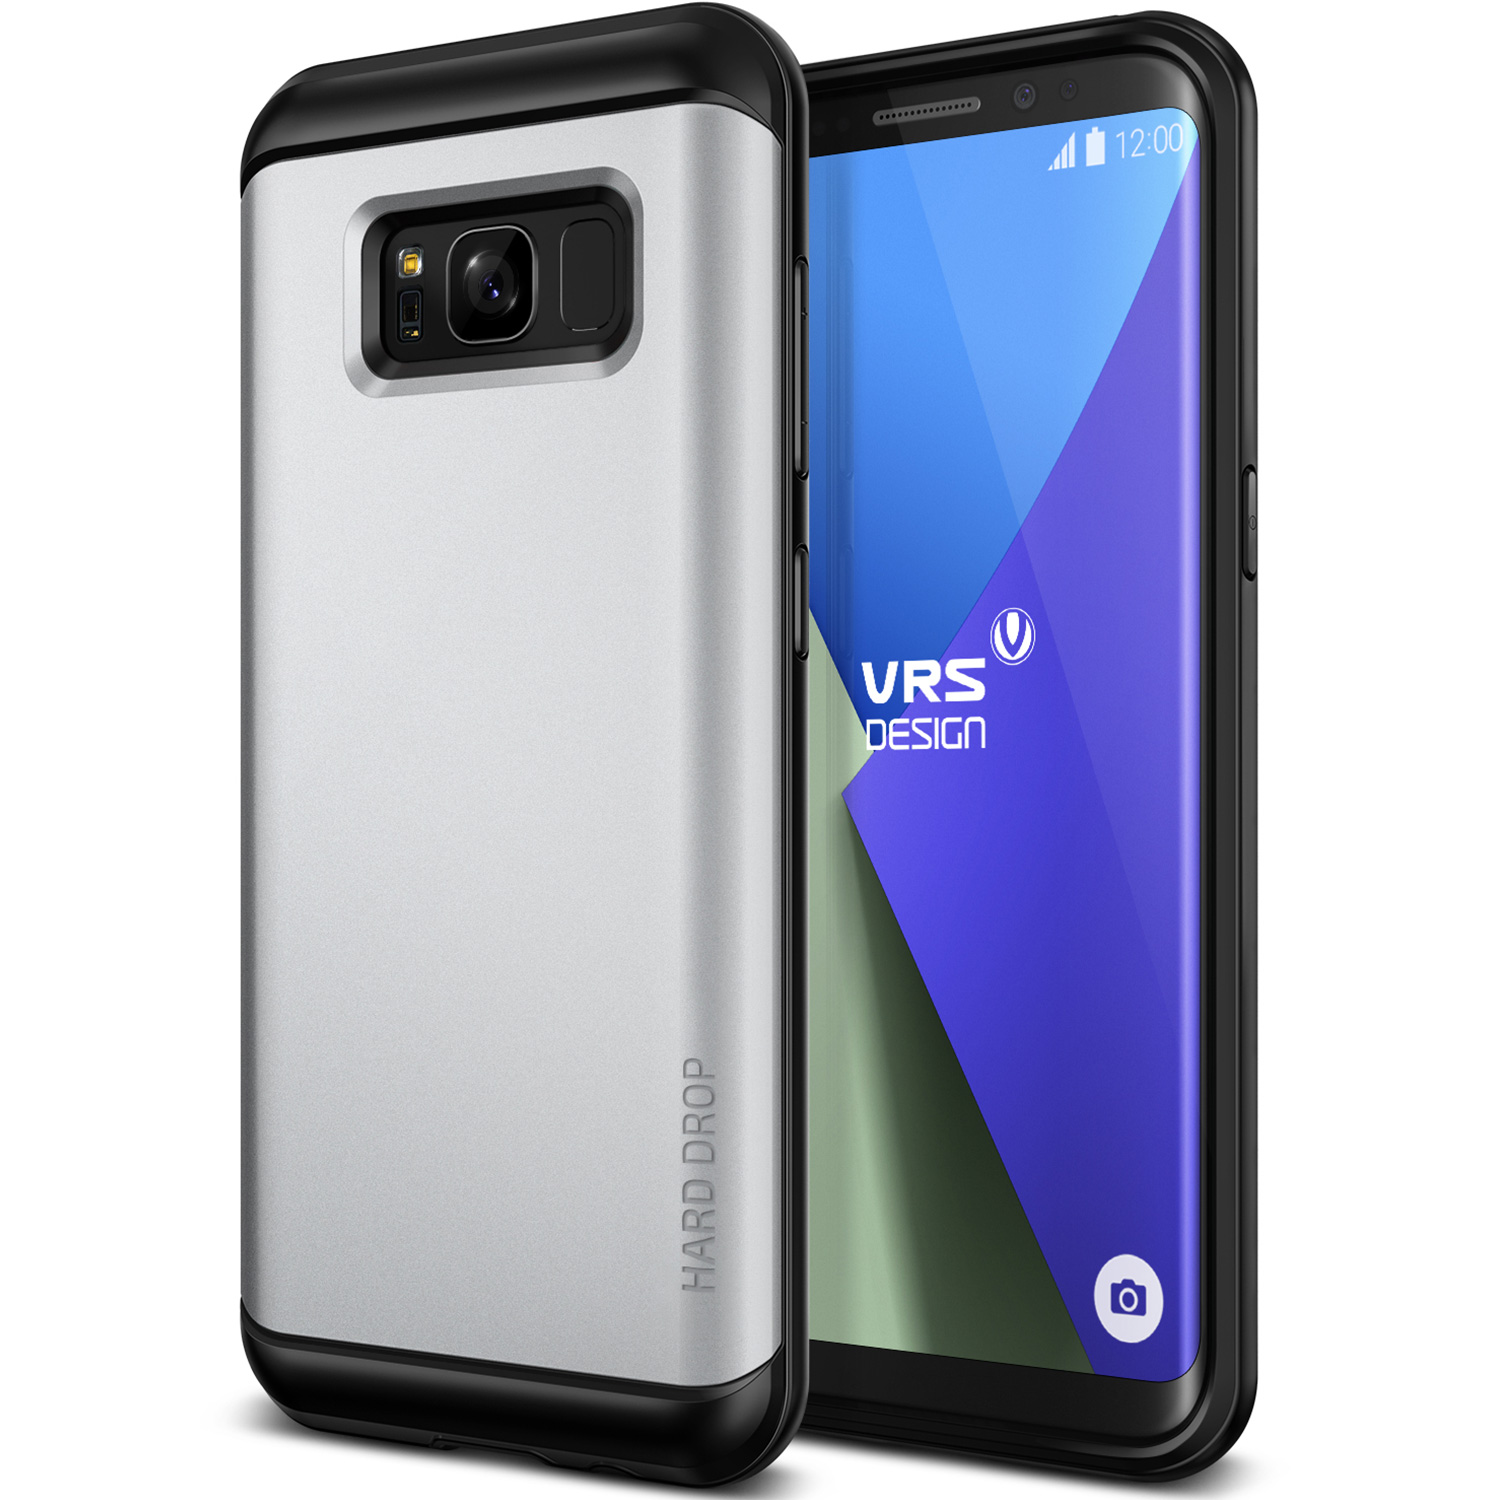 Samsung Galaxy S8 Case Cover | Rugged Protection with Ultra Grip | VRS Design Thor for Samsung Galaxy S8